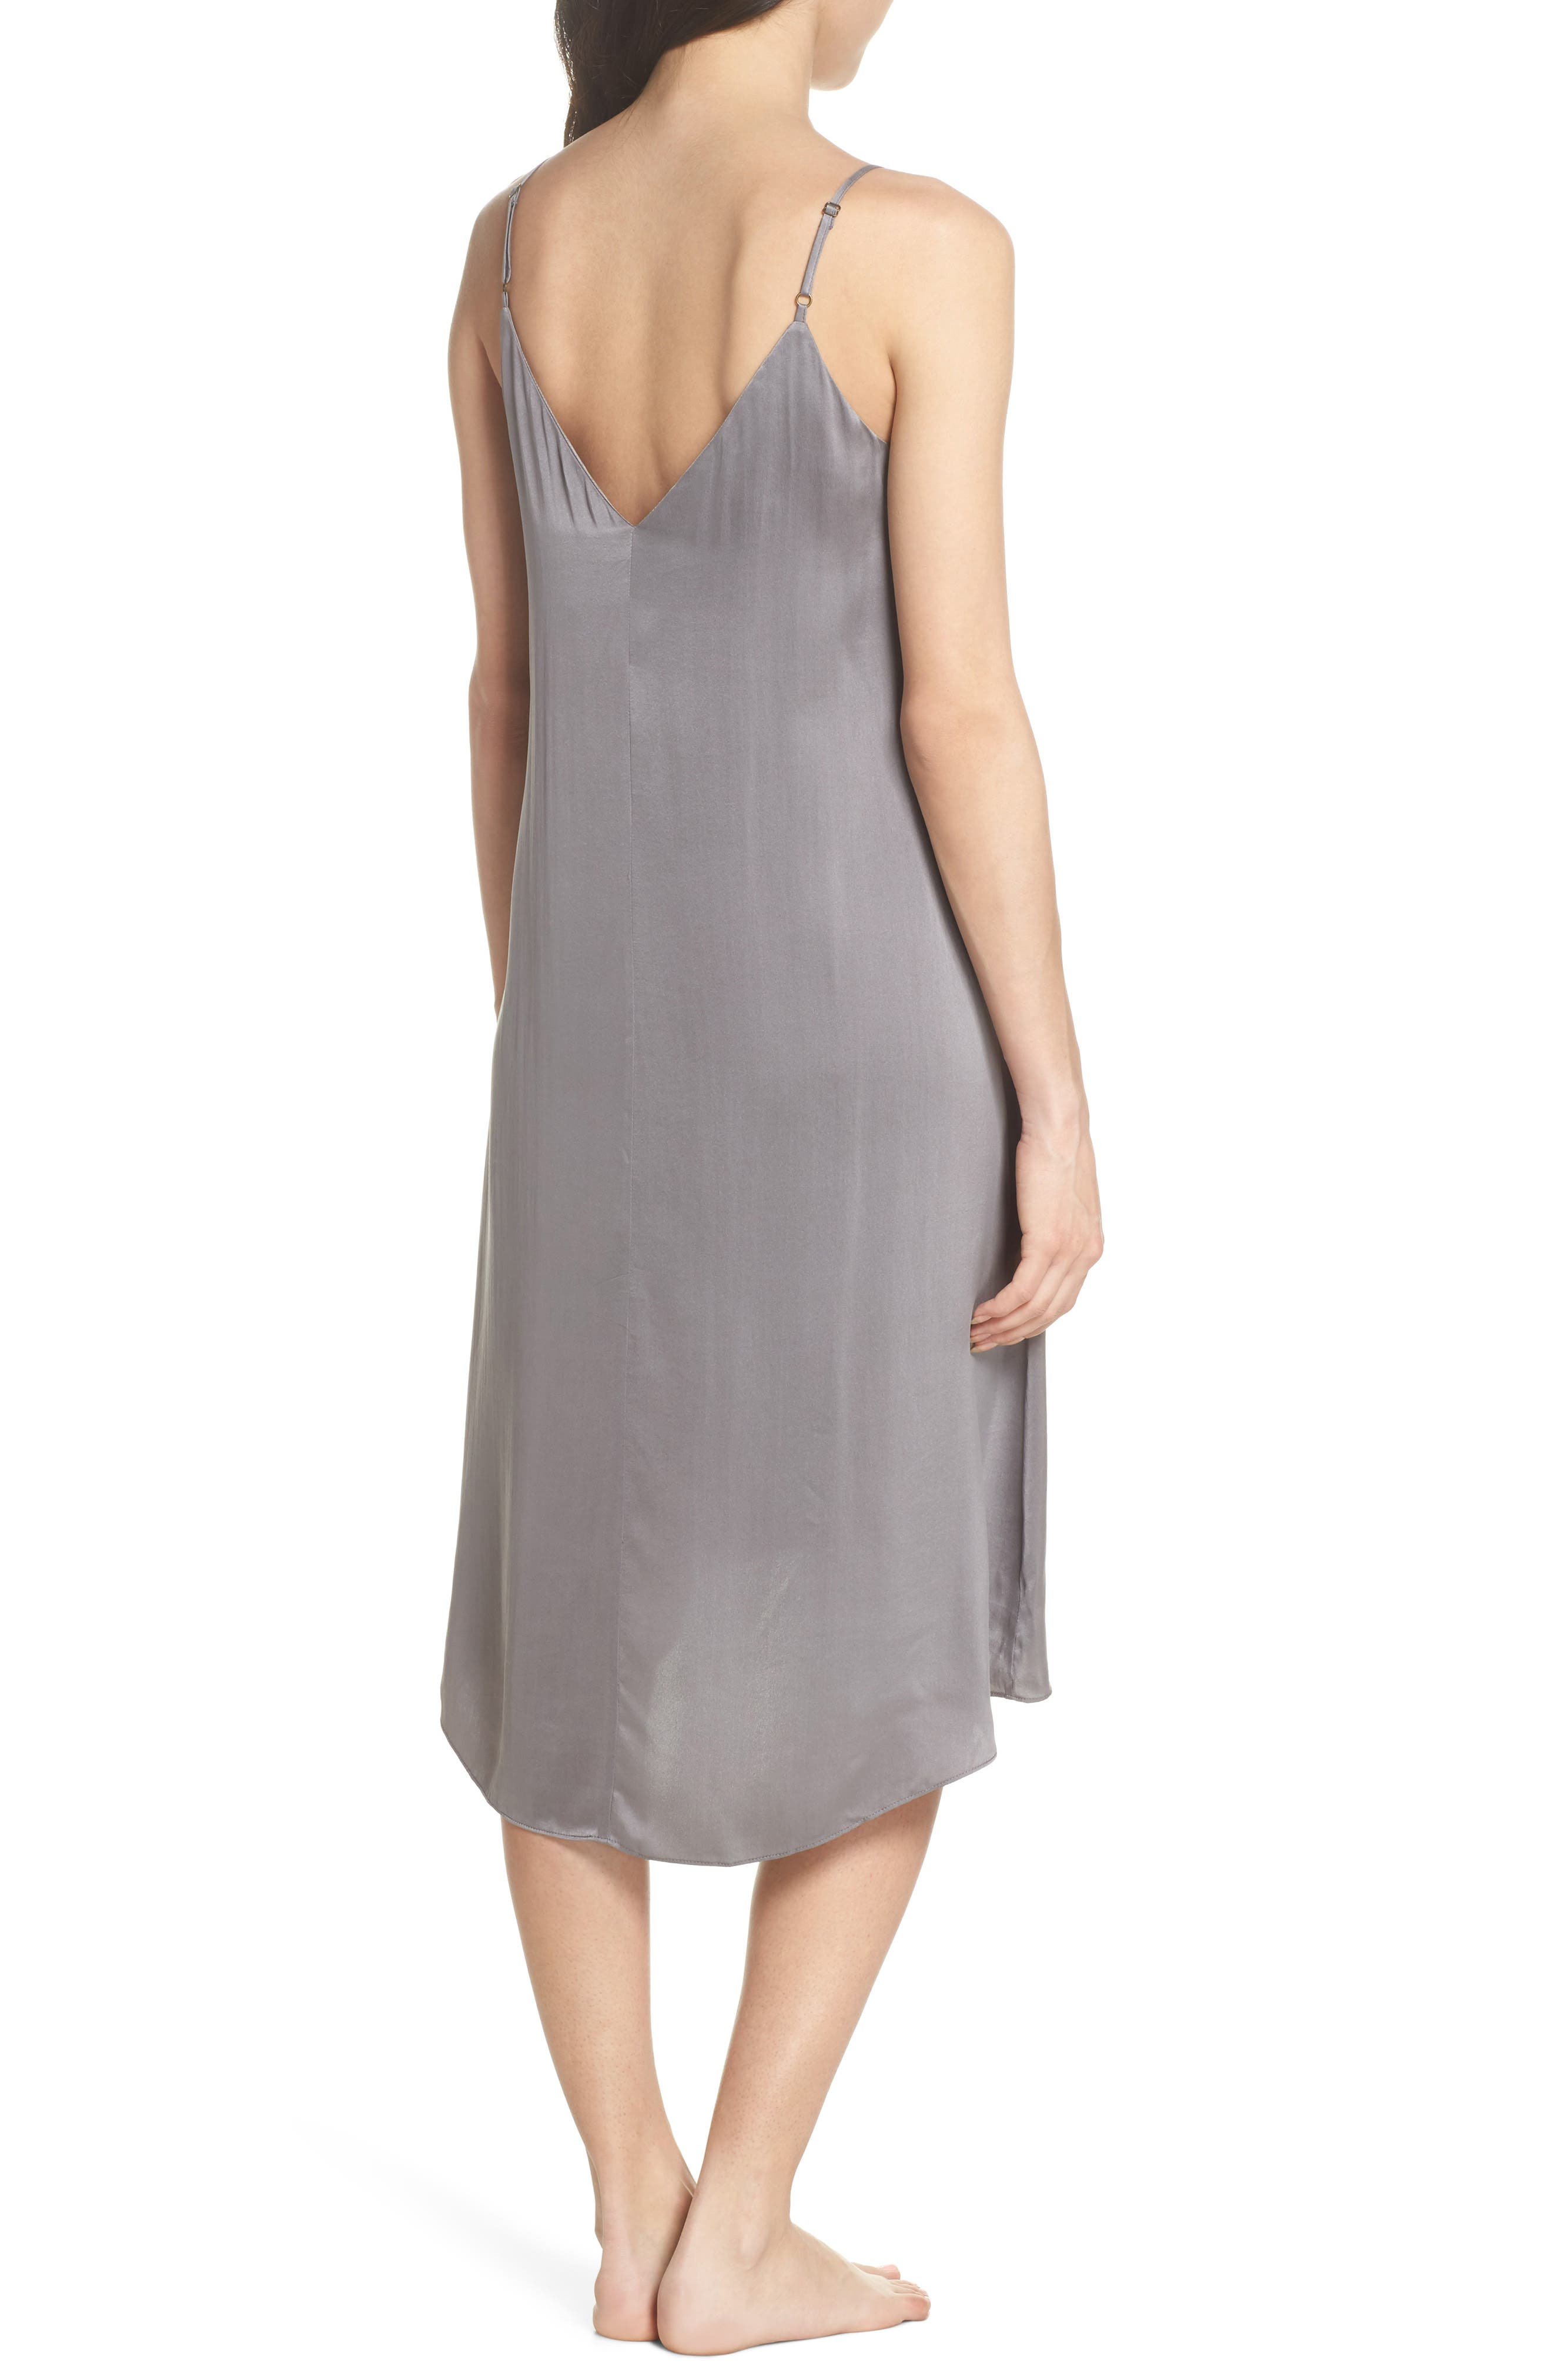 PAPINELLE, Silk Nightgown, Alternate thumbnail 2, color, CHARCOAL